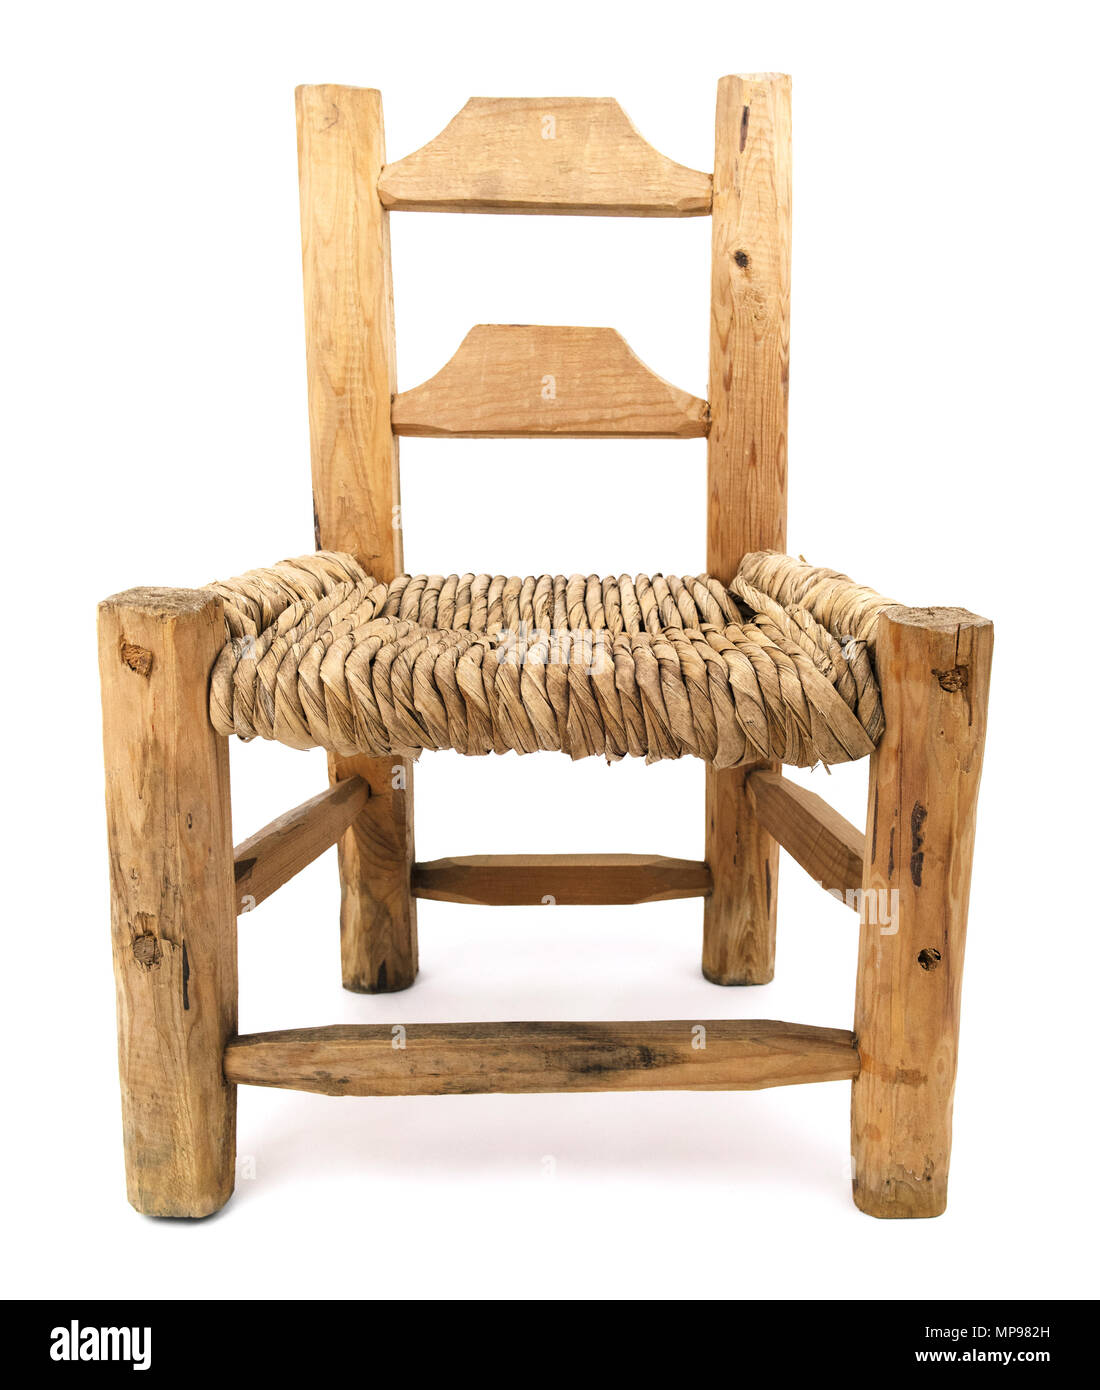 woven chair stock photos woven chair stock images alamy rh alamy com CNC Plywood Chairs Wood and Metal Chairs